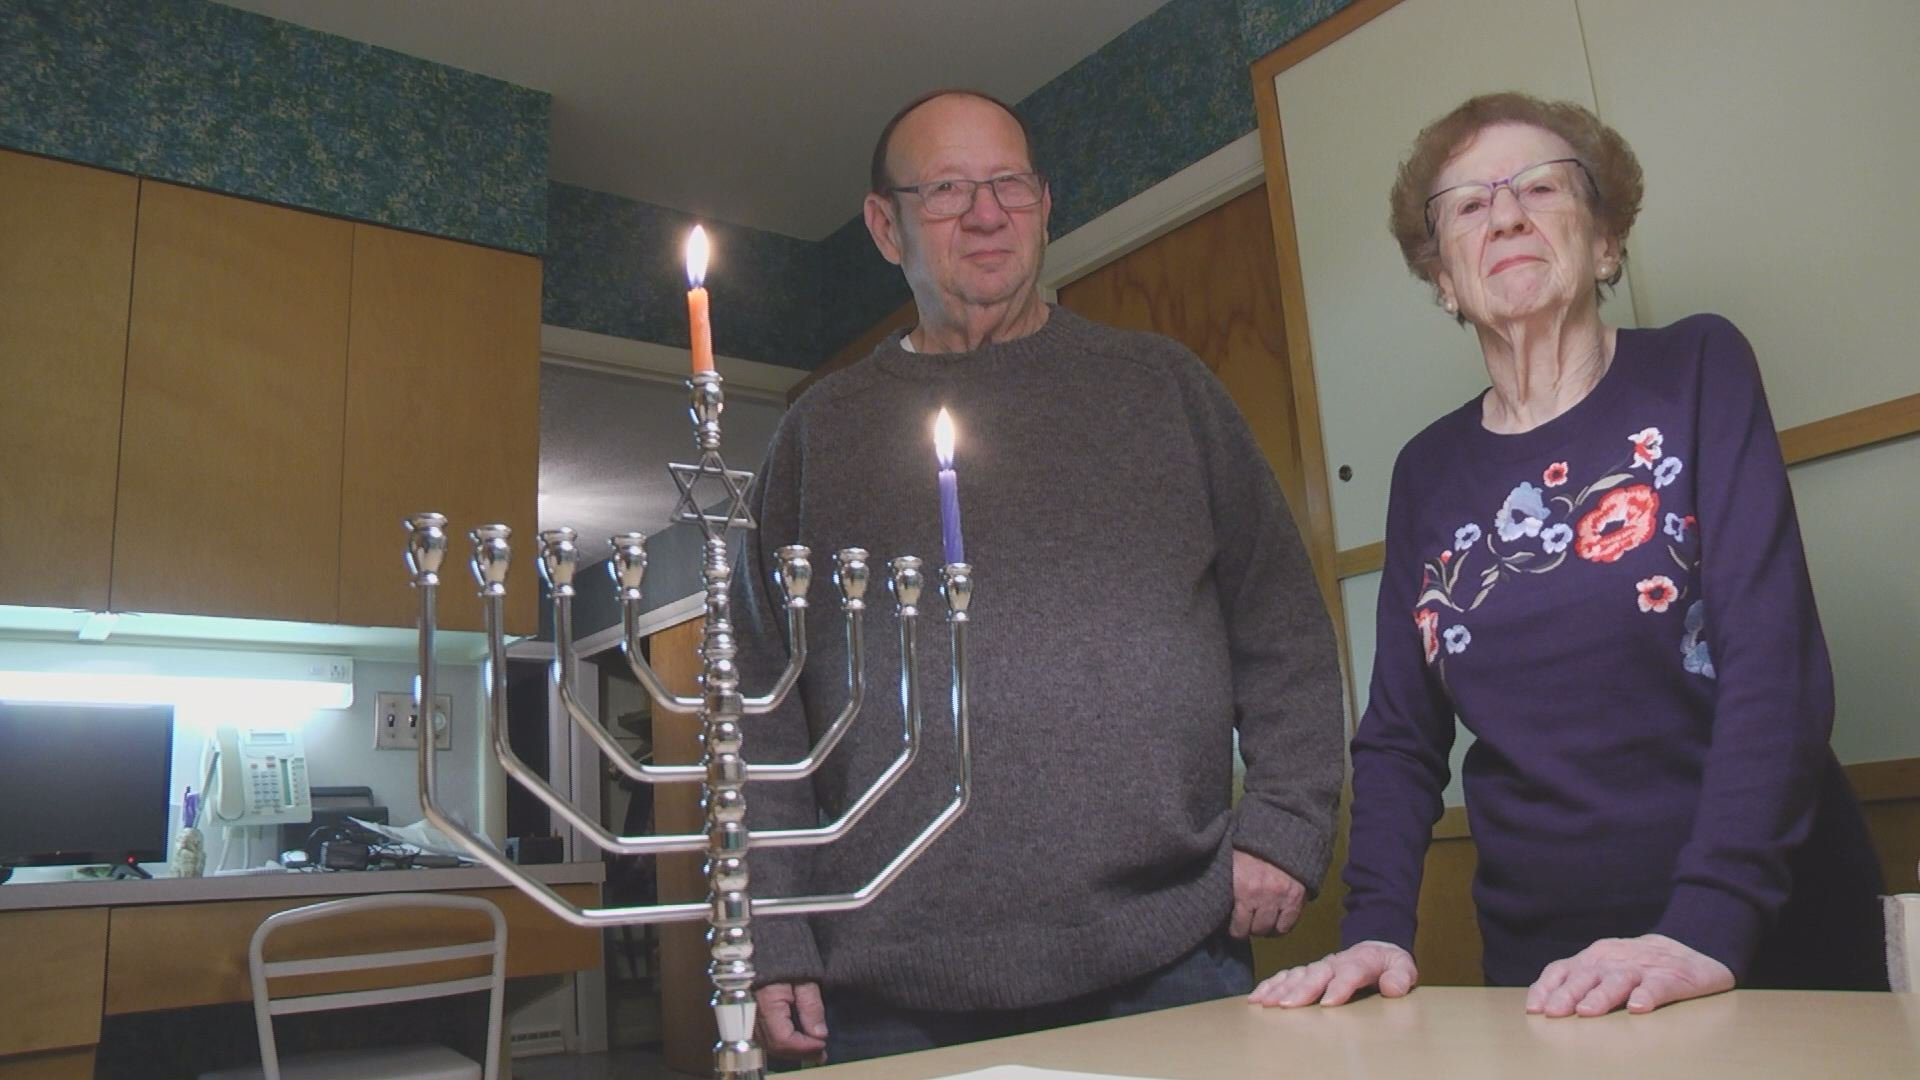 Aurora hosting menorah lighting ceremony for Hanukkah